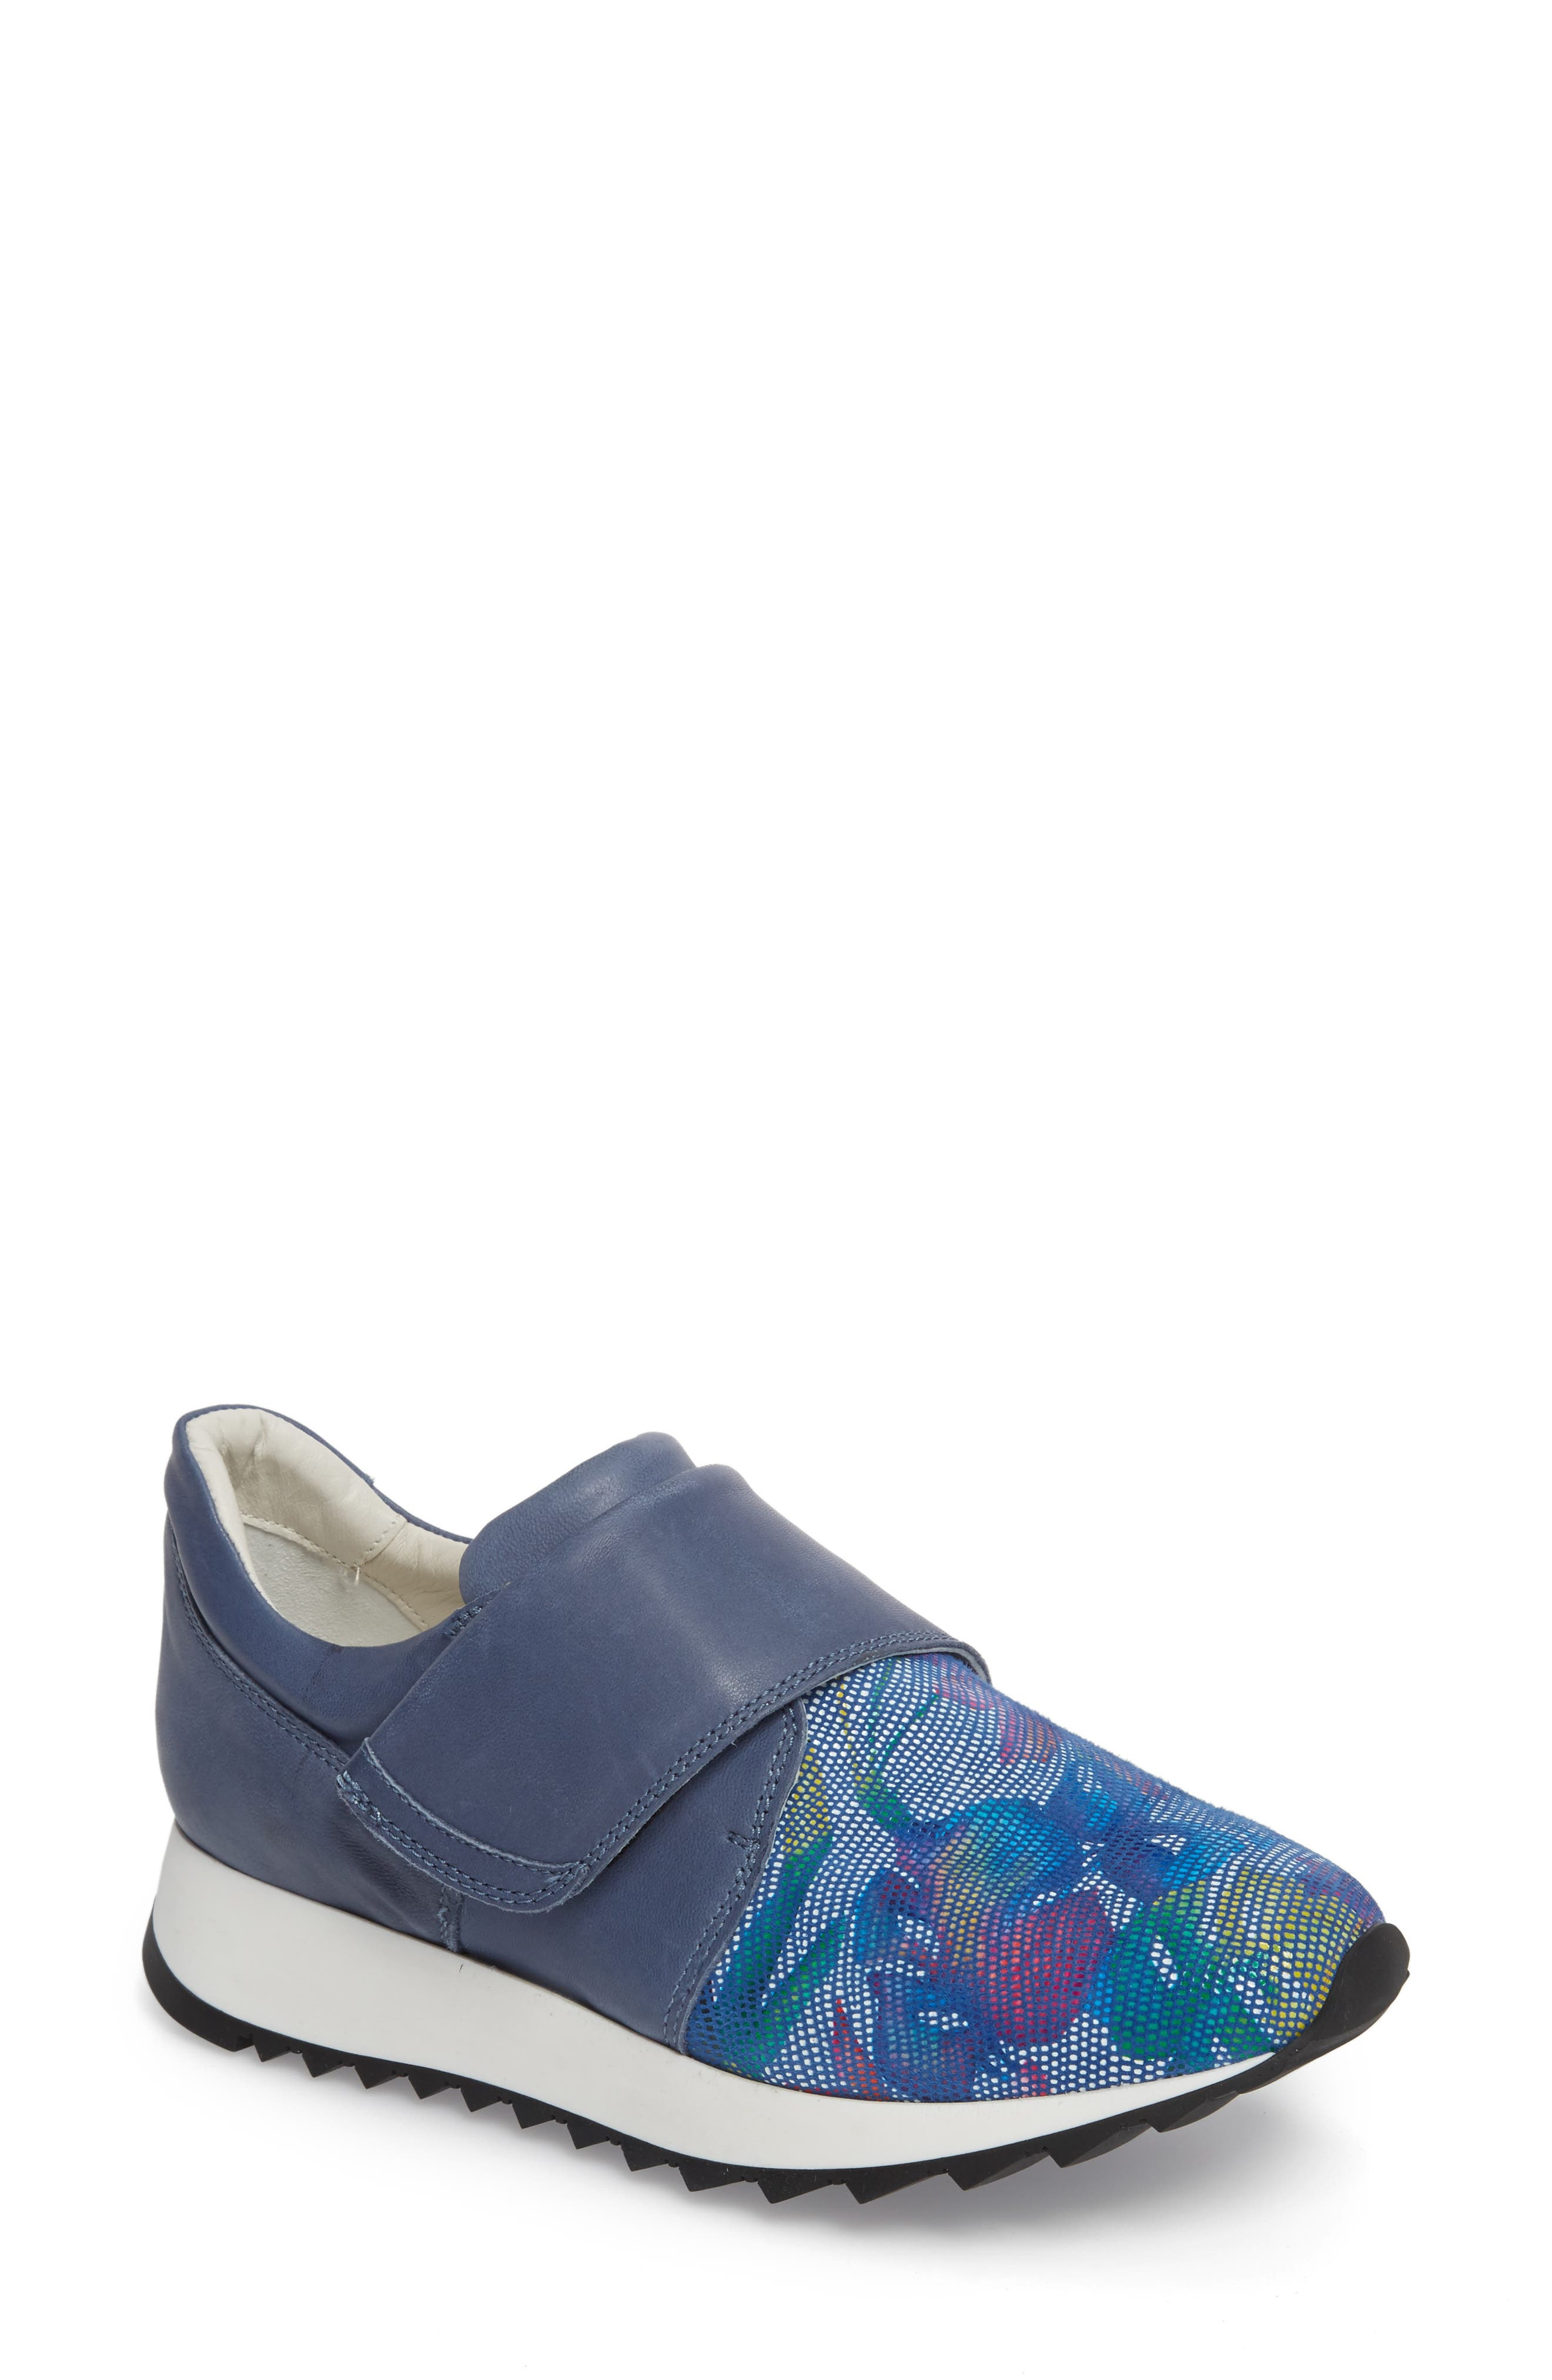 Danza Wedge Sneaker,                         Main,                         color, Royal Leather